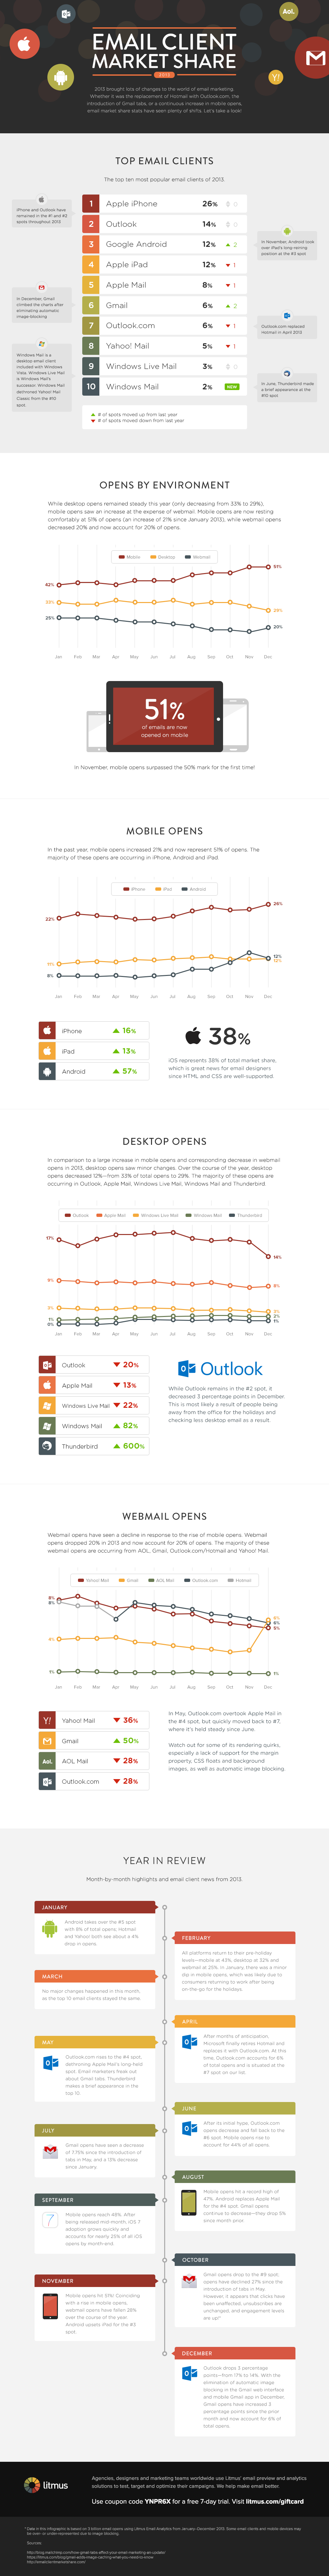 Email Client Market Share: Where People Opened in 2013